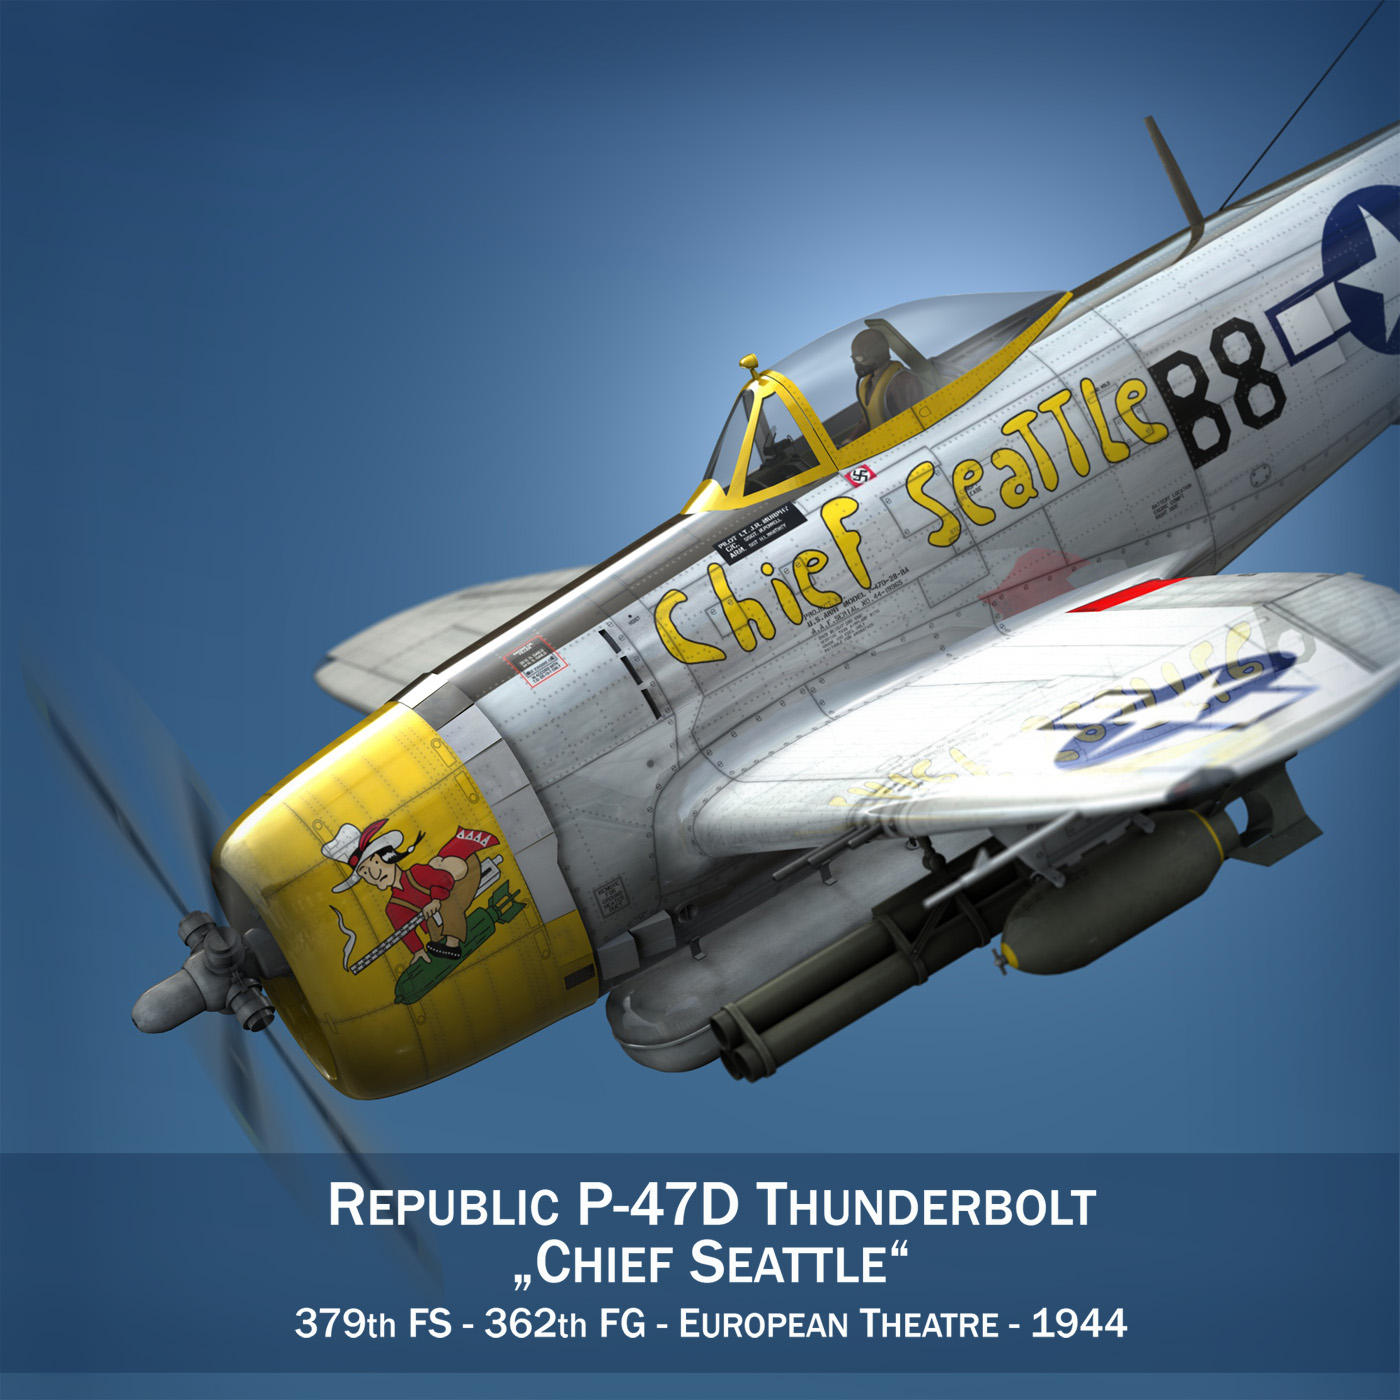 republic p-47d thunderbolt – chief seattle 3d model fbx c4d lwo obj 268200